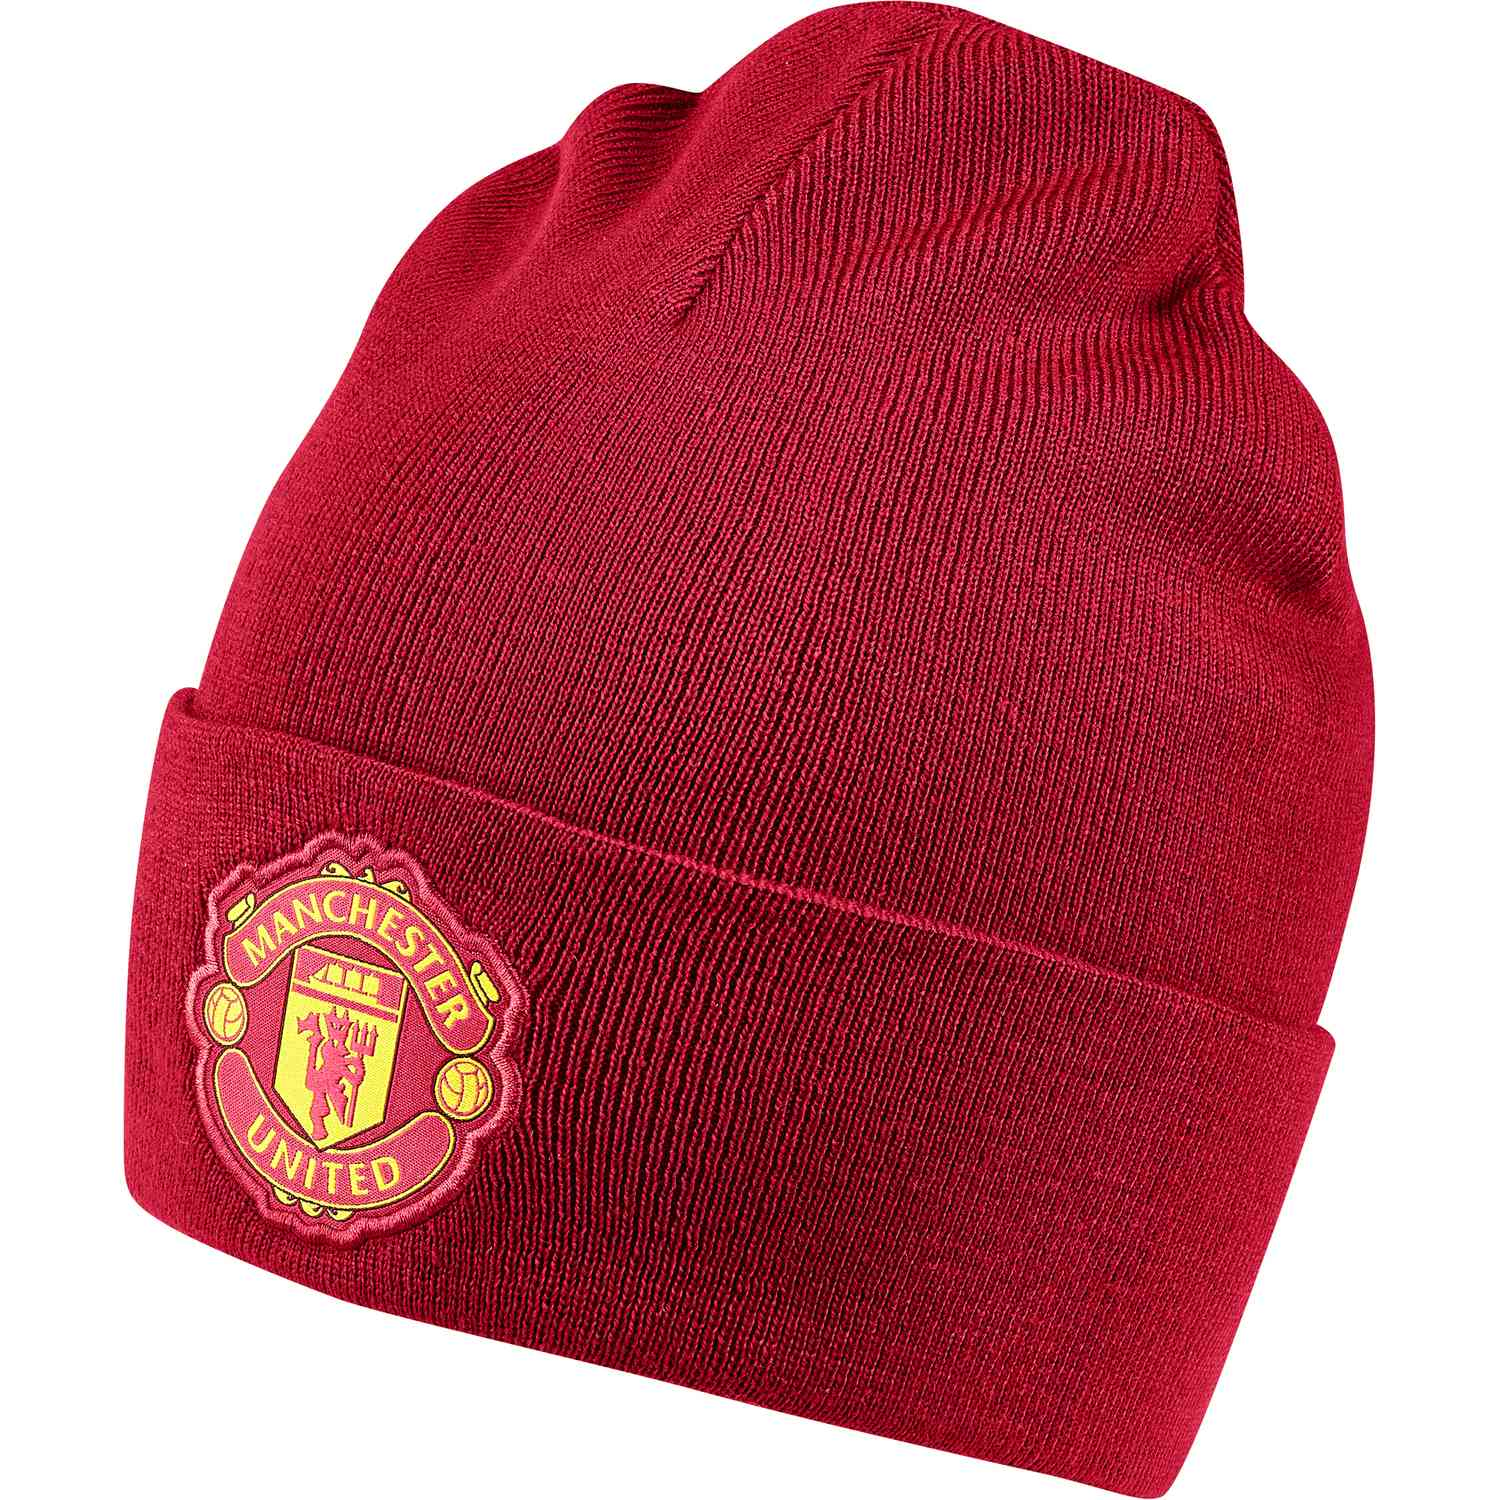 880551a1e4b adidas Manchester United Beanie - Real Red Black - SoccerPro